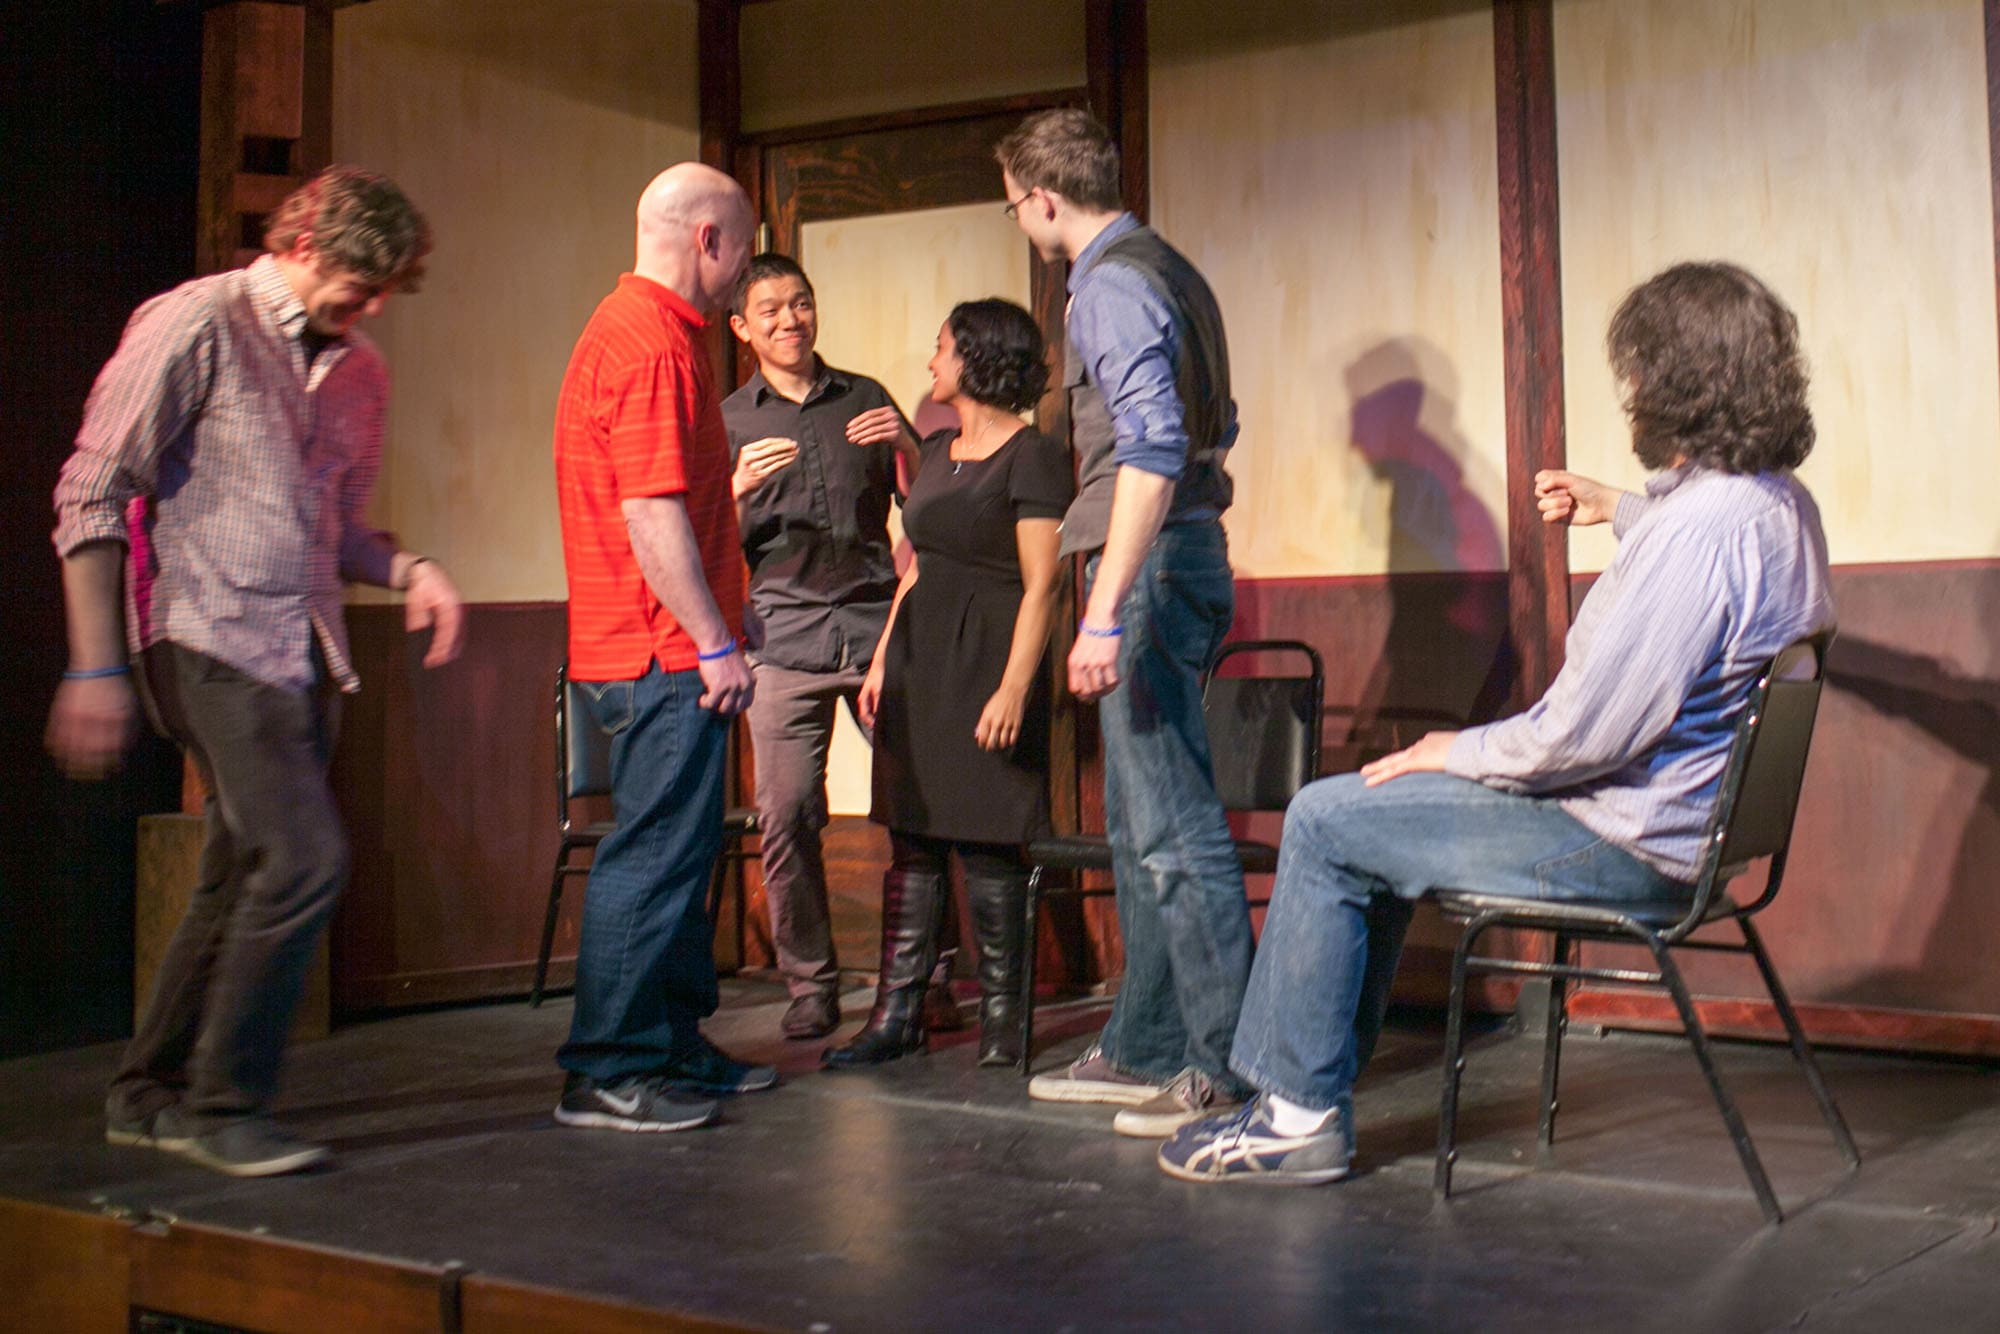 98.6 performing at the 17th annual Chicago Improv Festival